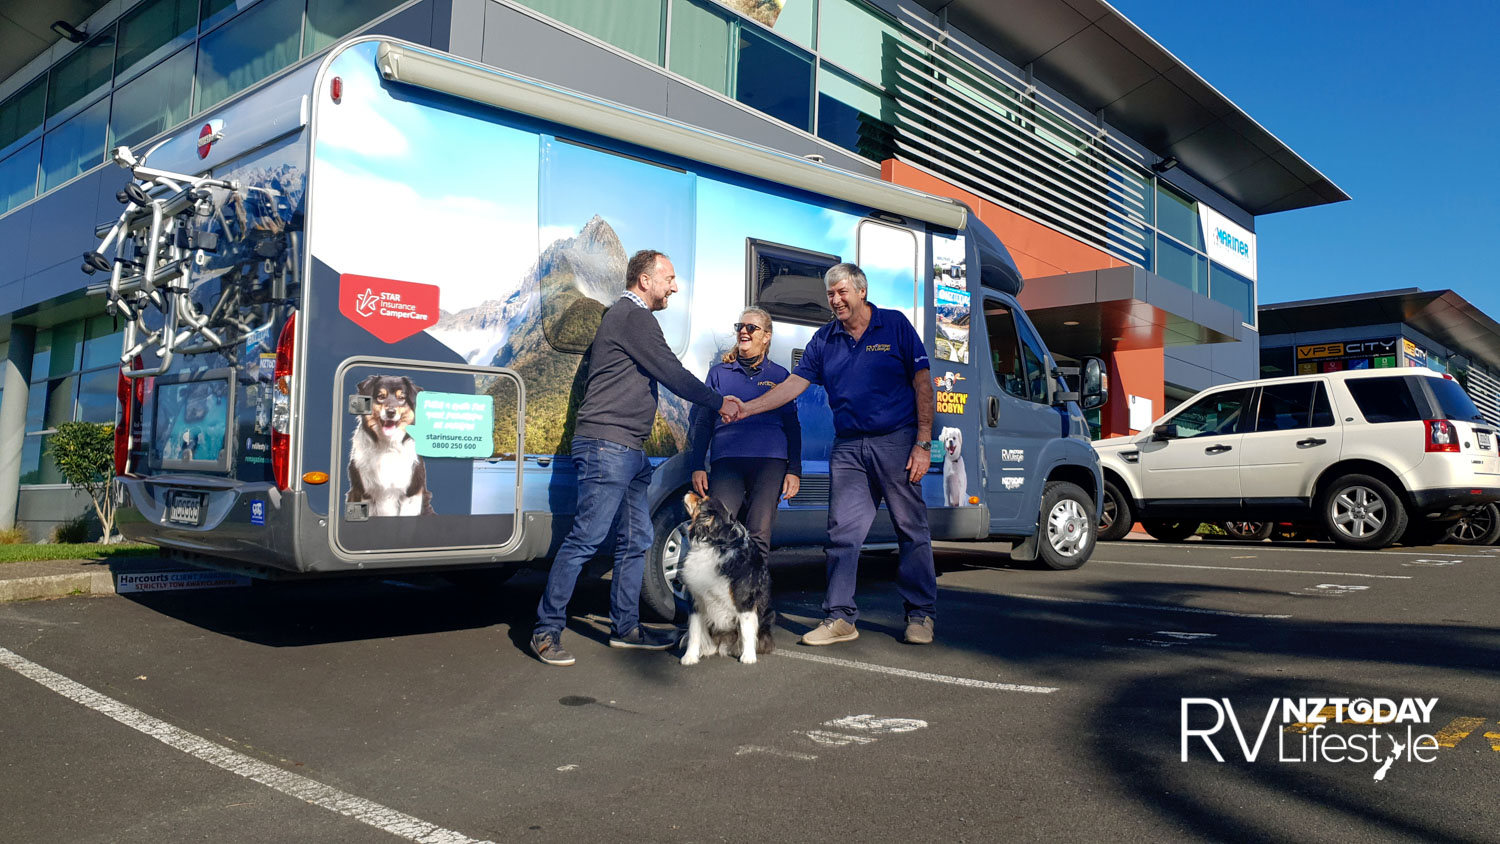 Nick Baker from Star Insurance, with Bailey the Camper Care Insurance mascot - Bruce and Robyn picking up the vehicle after graphic wrapping